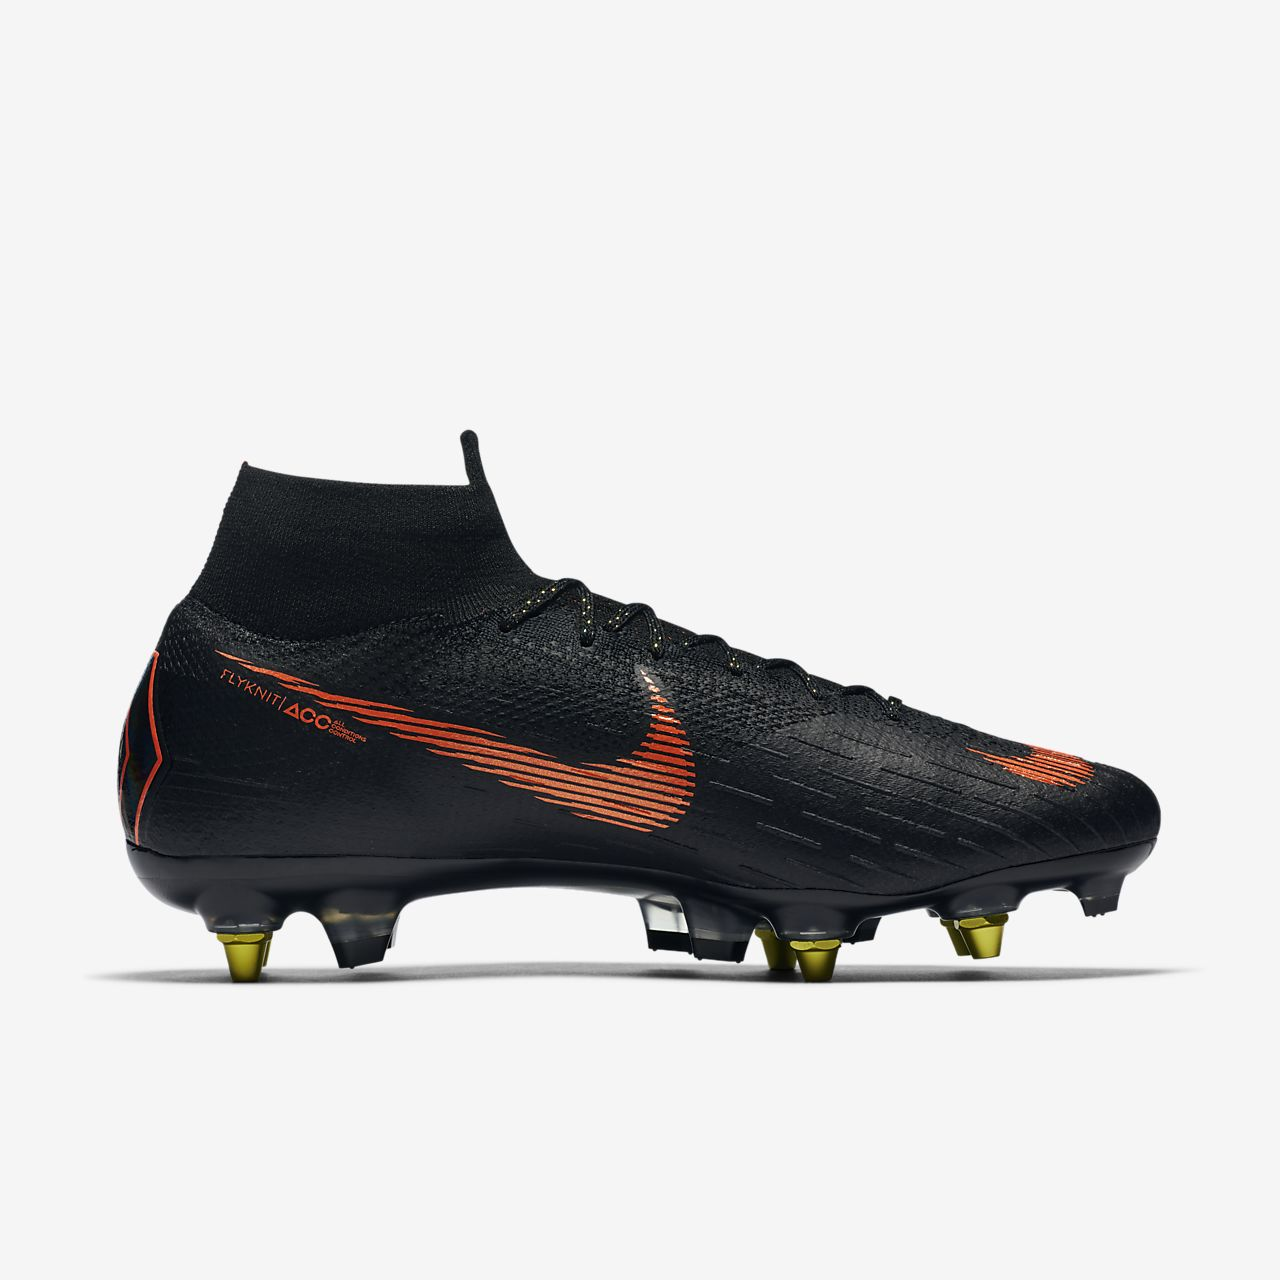 promo code 76d21 9663a Nike Mercurial Superfly VI Academy MG, Chaussures de Football Homme, Noir  (Black